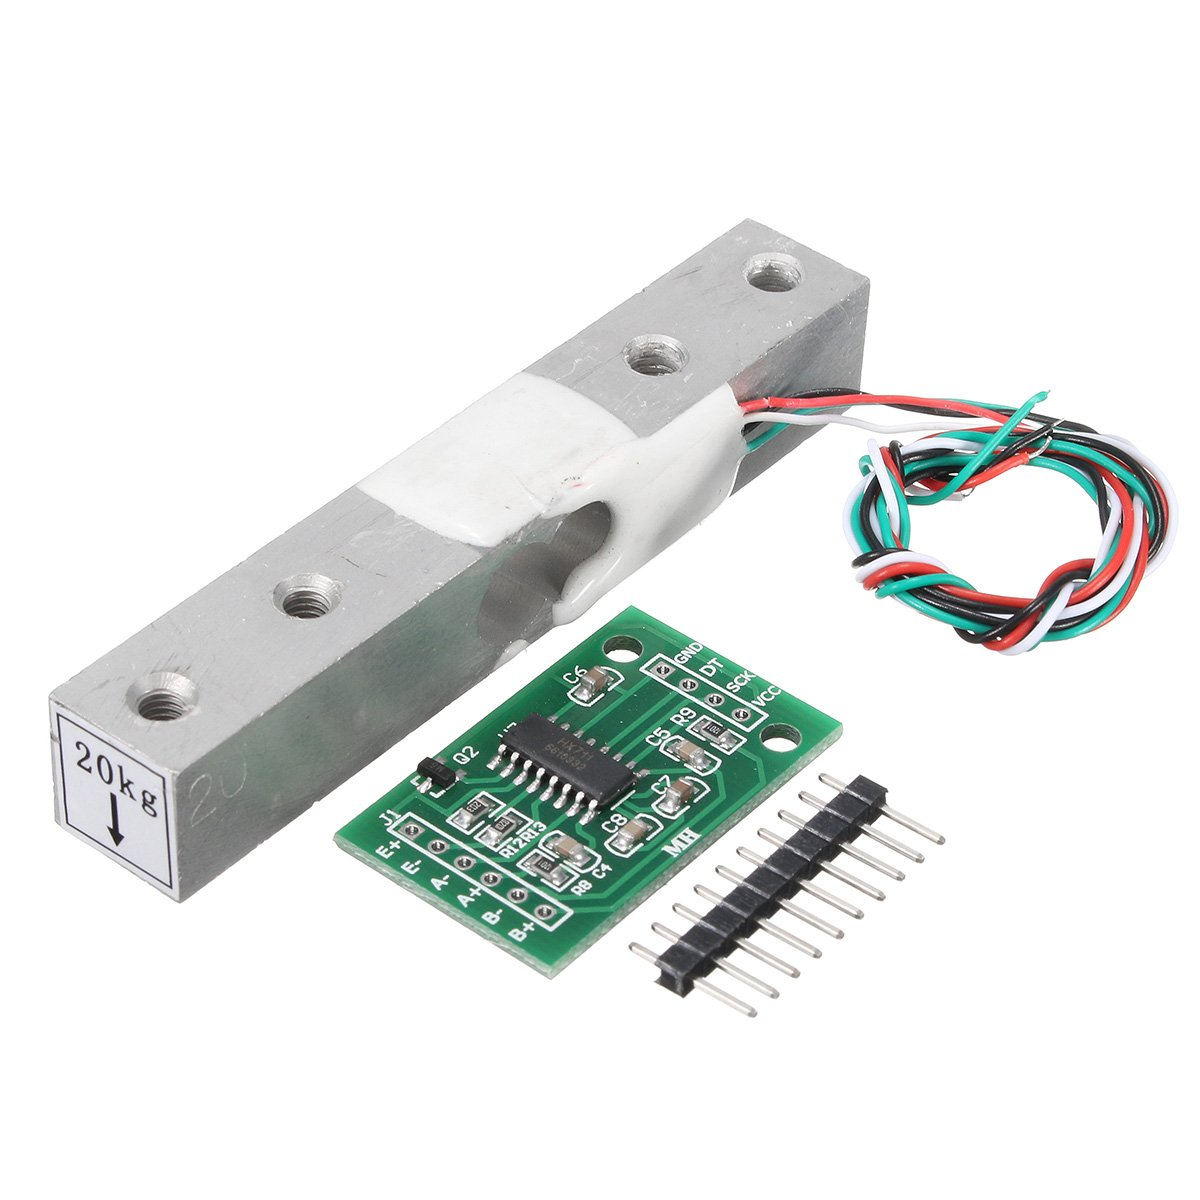 HX711 Module + 20kg Aluminum Alloy Scale Weighing Sensor Load Cell Kit For Arduino - Arduino Compatible SCM & DIY Kits - Module Board